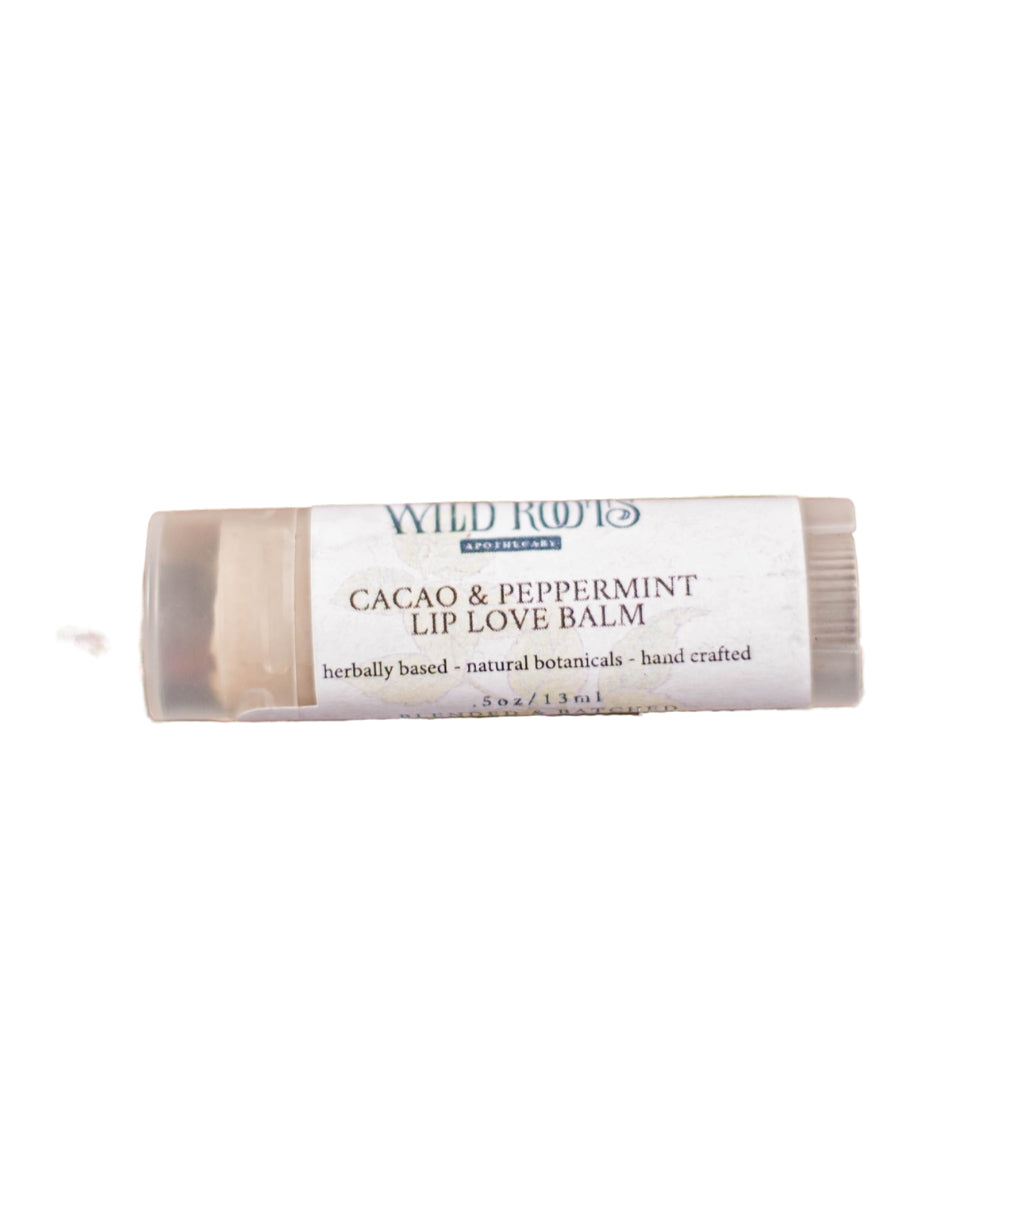 Cacao & Peppermint Lip Love